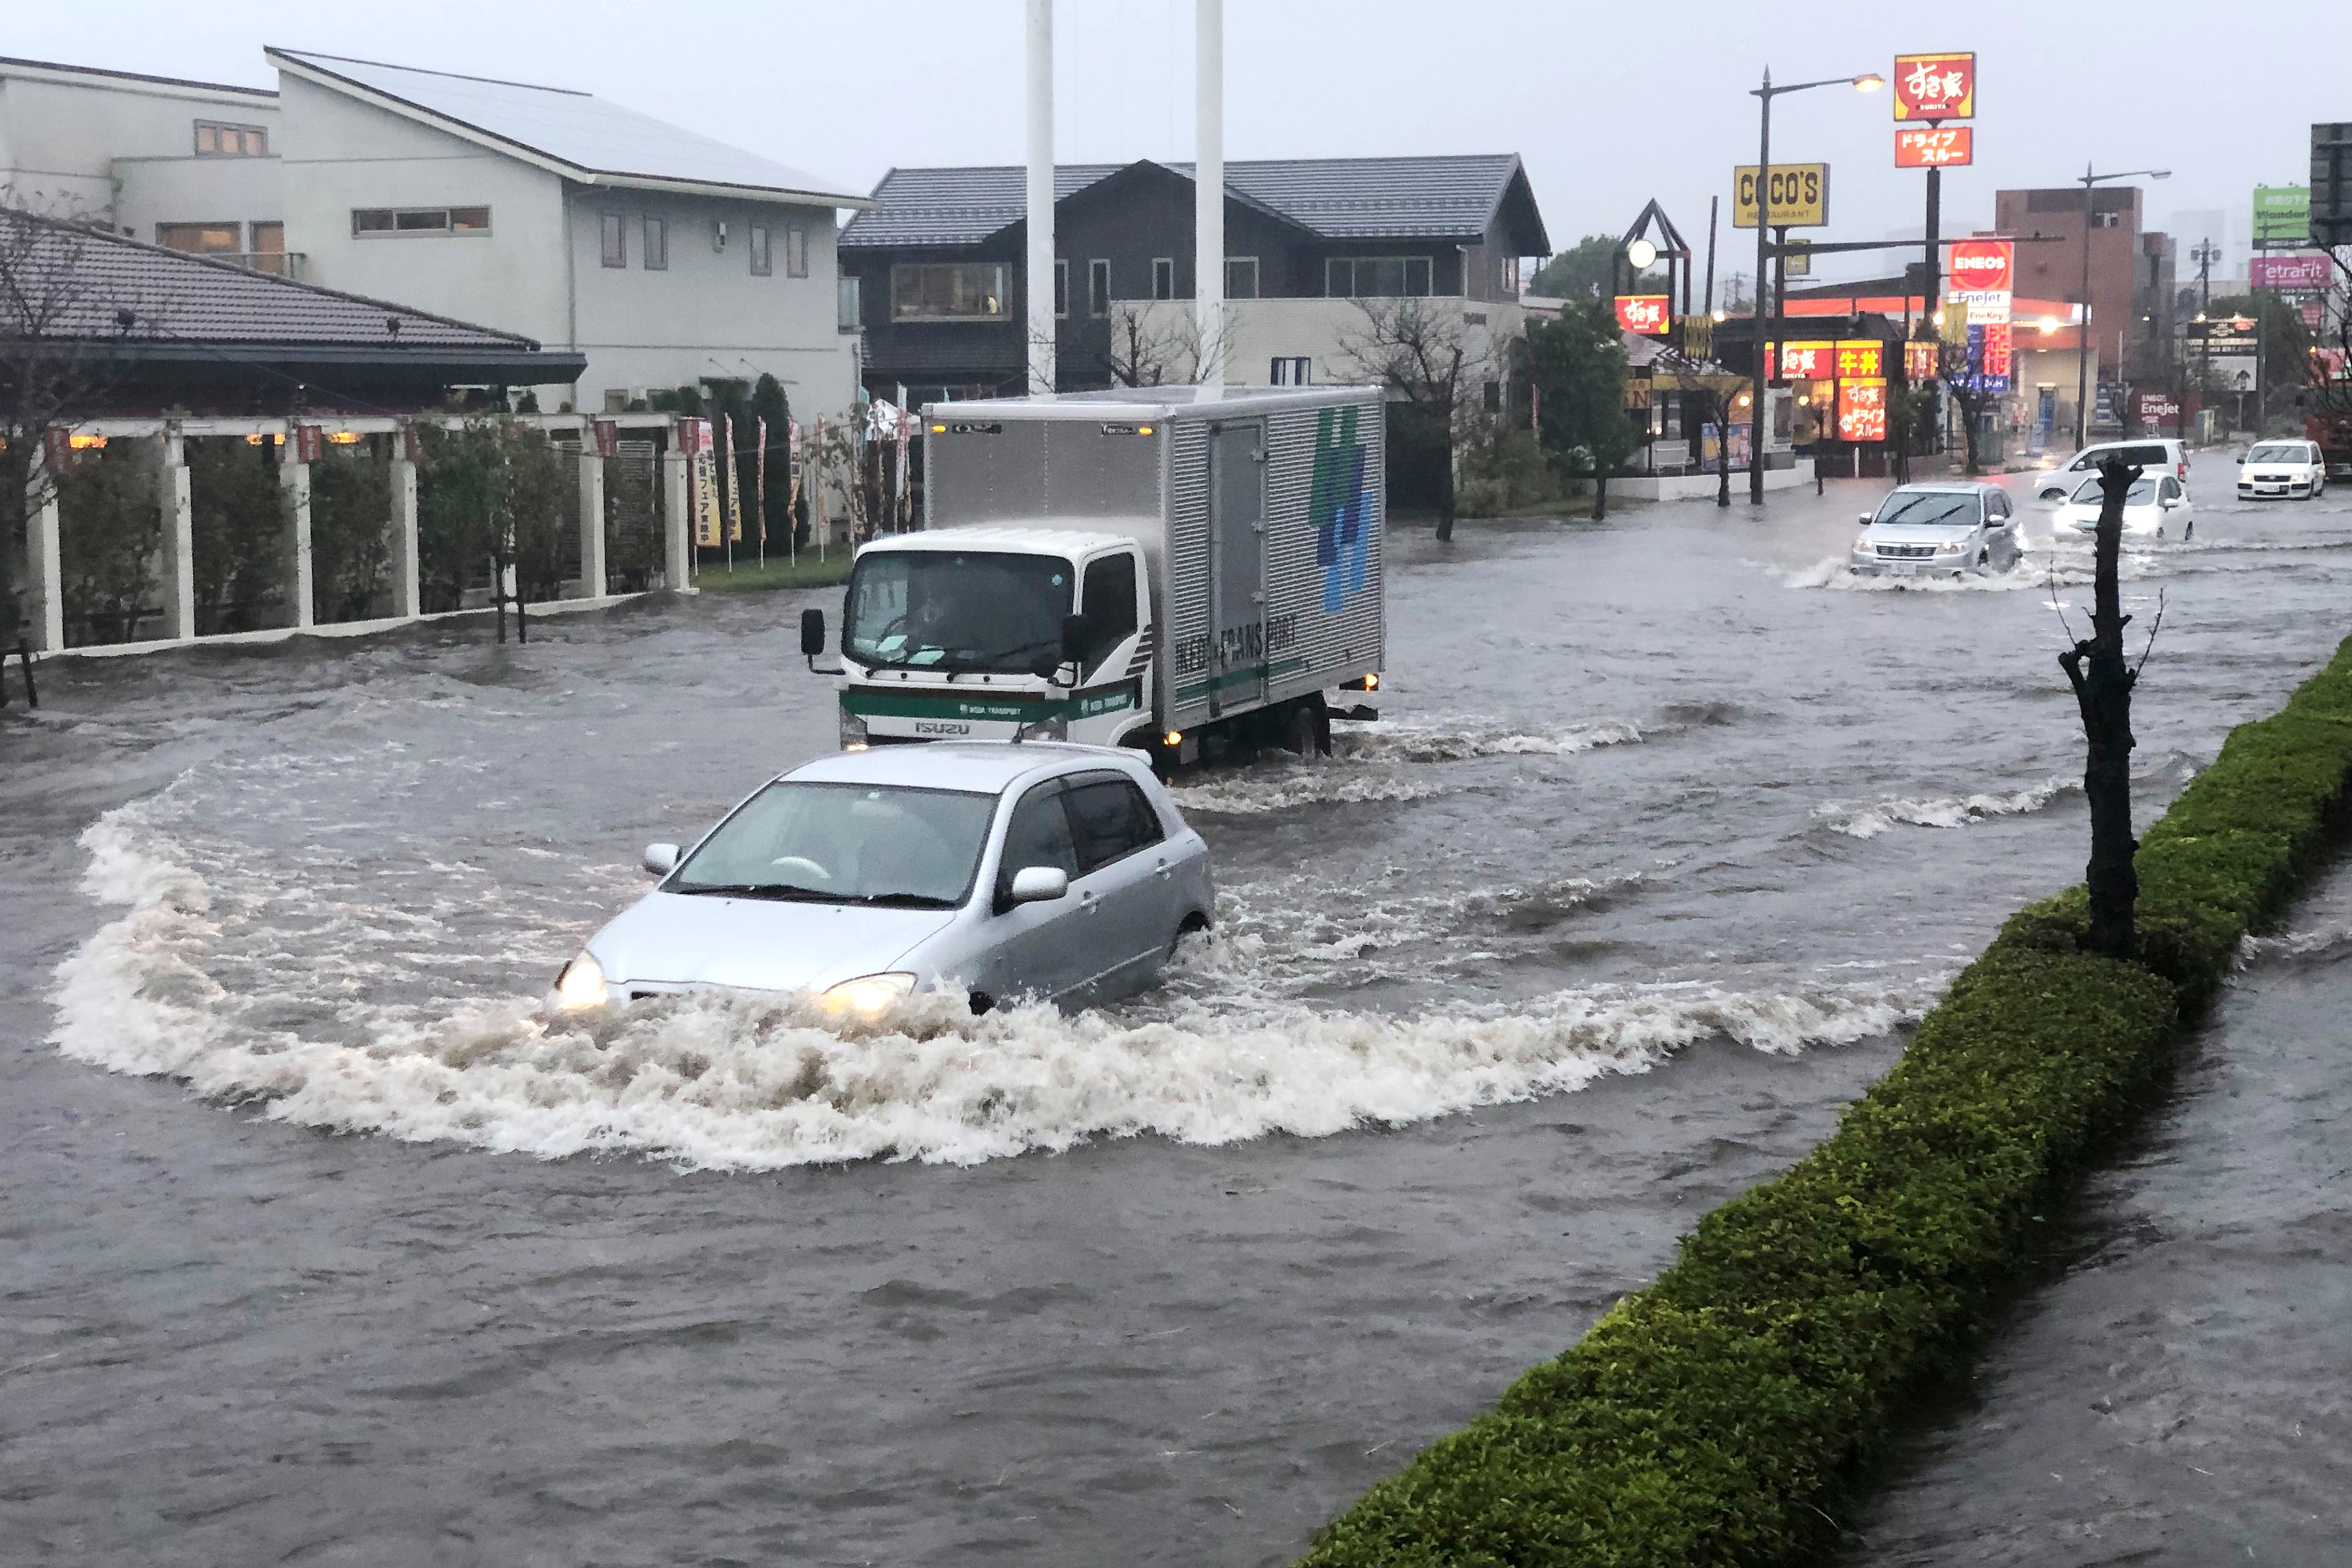 A street is flooded by heavy rain Friday, Oct. 25, 2019, in Narita, east of Tokyo. Torrential rain dumped from a low-pressure system hovering above Japan's main island has triggered flooding in towns east of Tokyo, prompting fears of more damage to areas already hit by typhoons earlier this month. (AP Photo/Lee Jin-man)